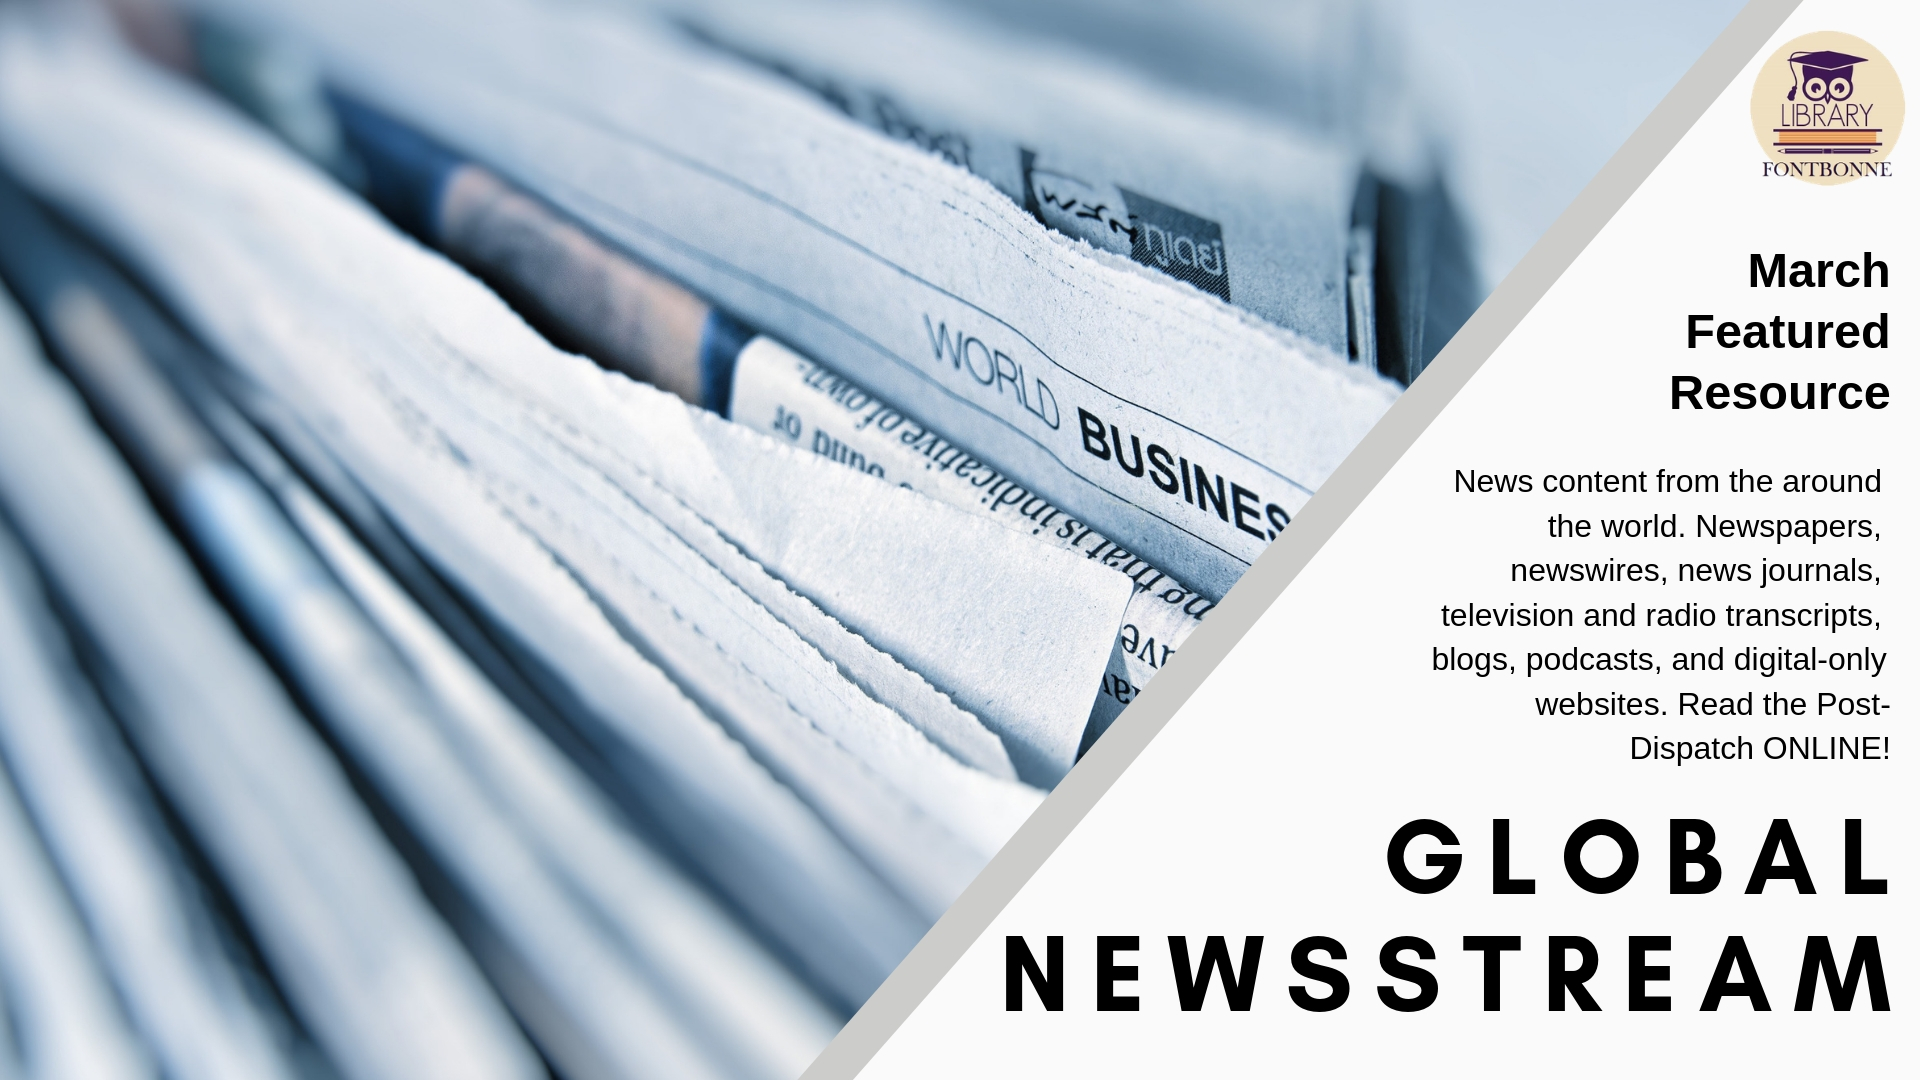 Read the Post-Dispatch and other world wide news online with Global Newsstream